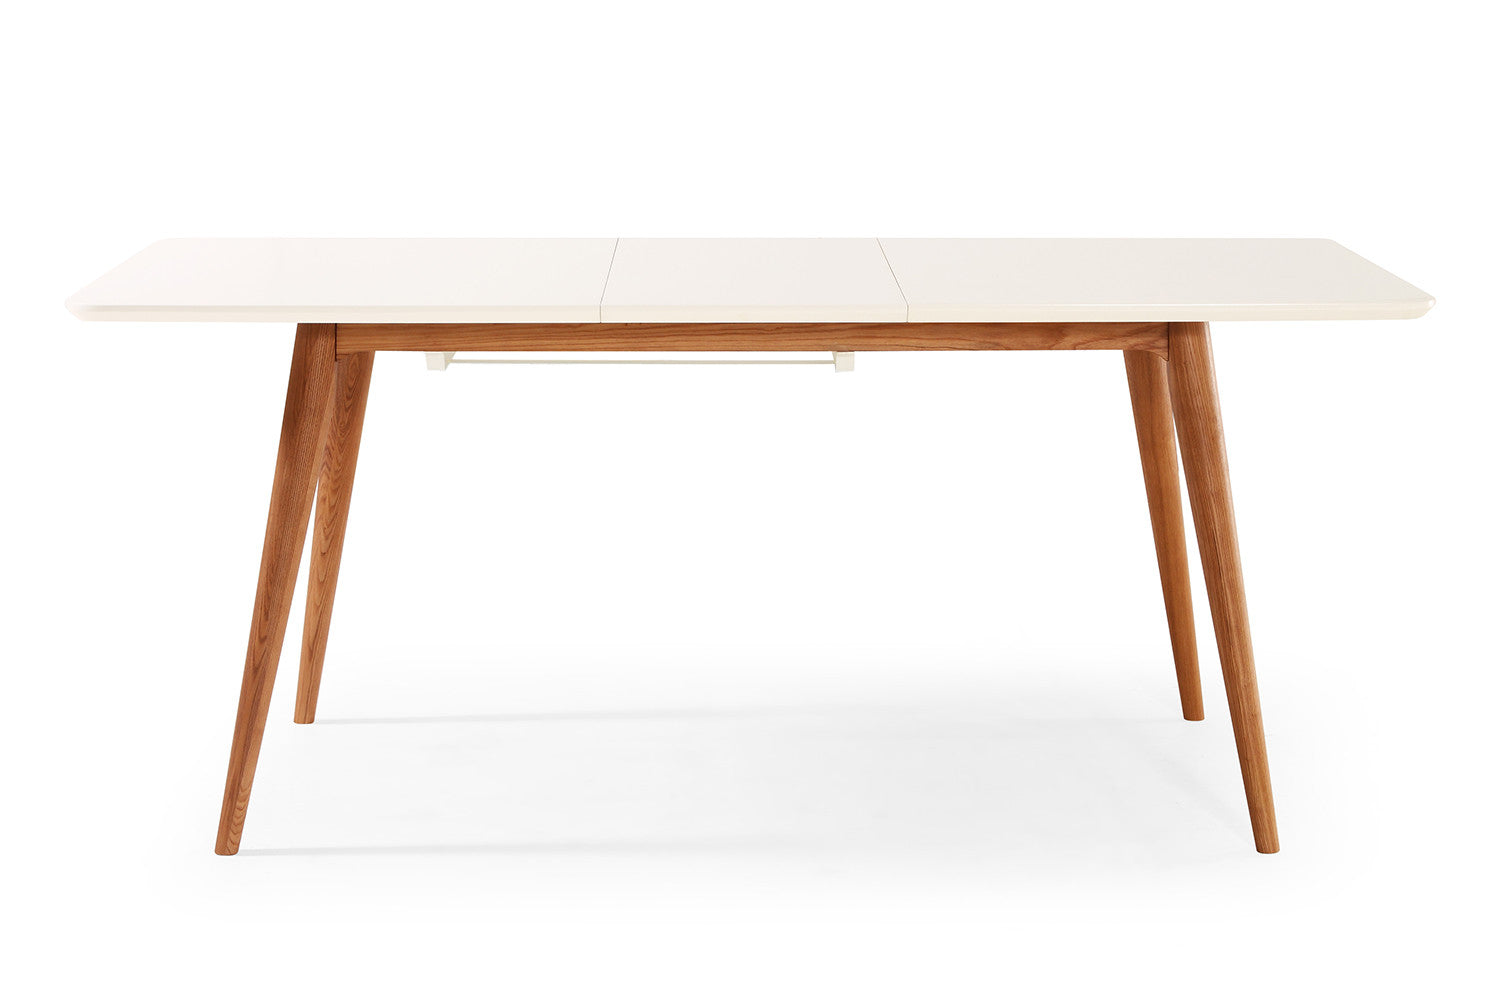 Table de salle manger extensible scandinave wyna dewarens - Table rectangulaire a rallonge ...